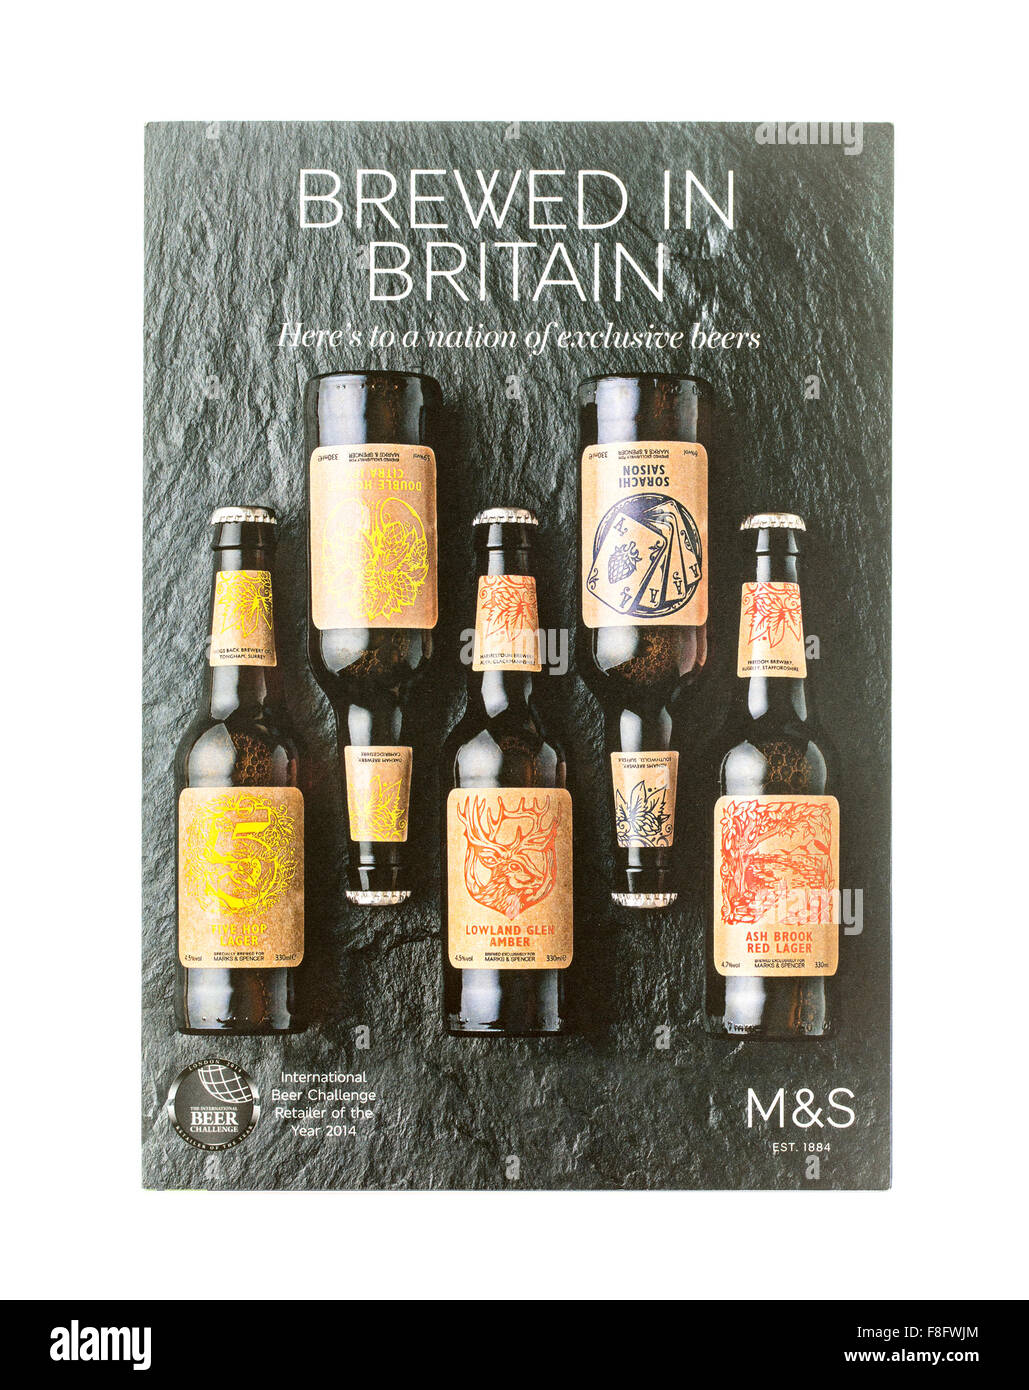 Marks and Spencer Brewed in Britain, Exclusive Beers on a White Background - Stock Image